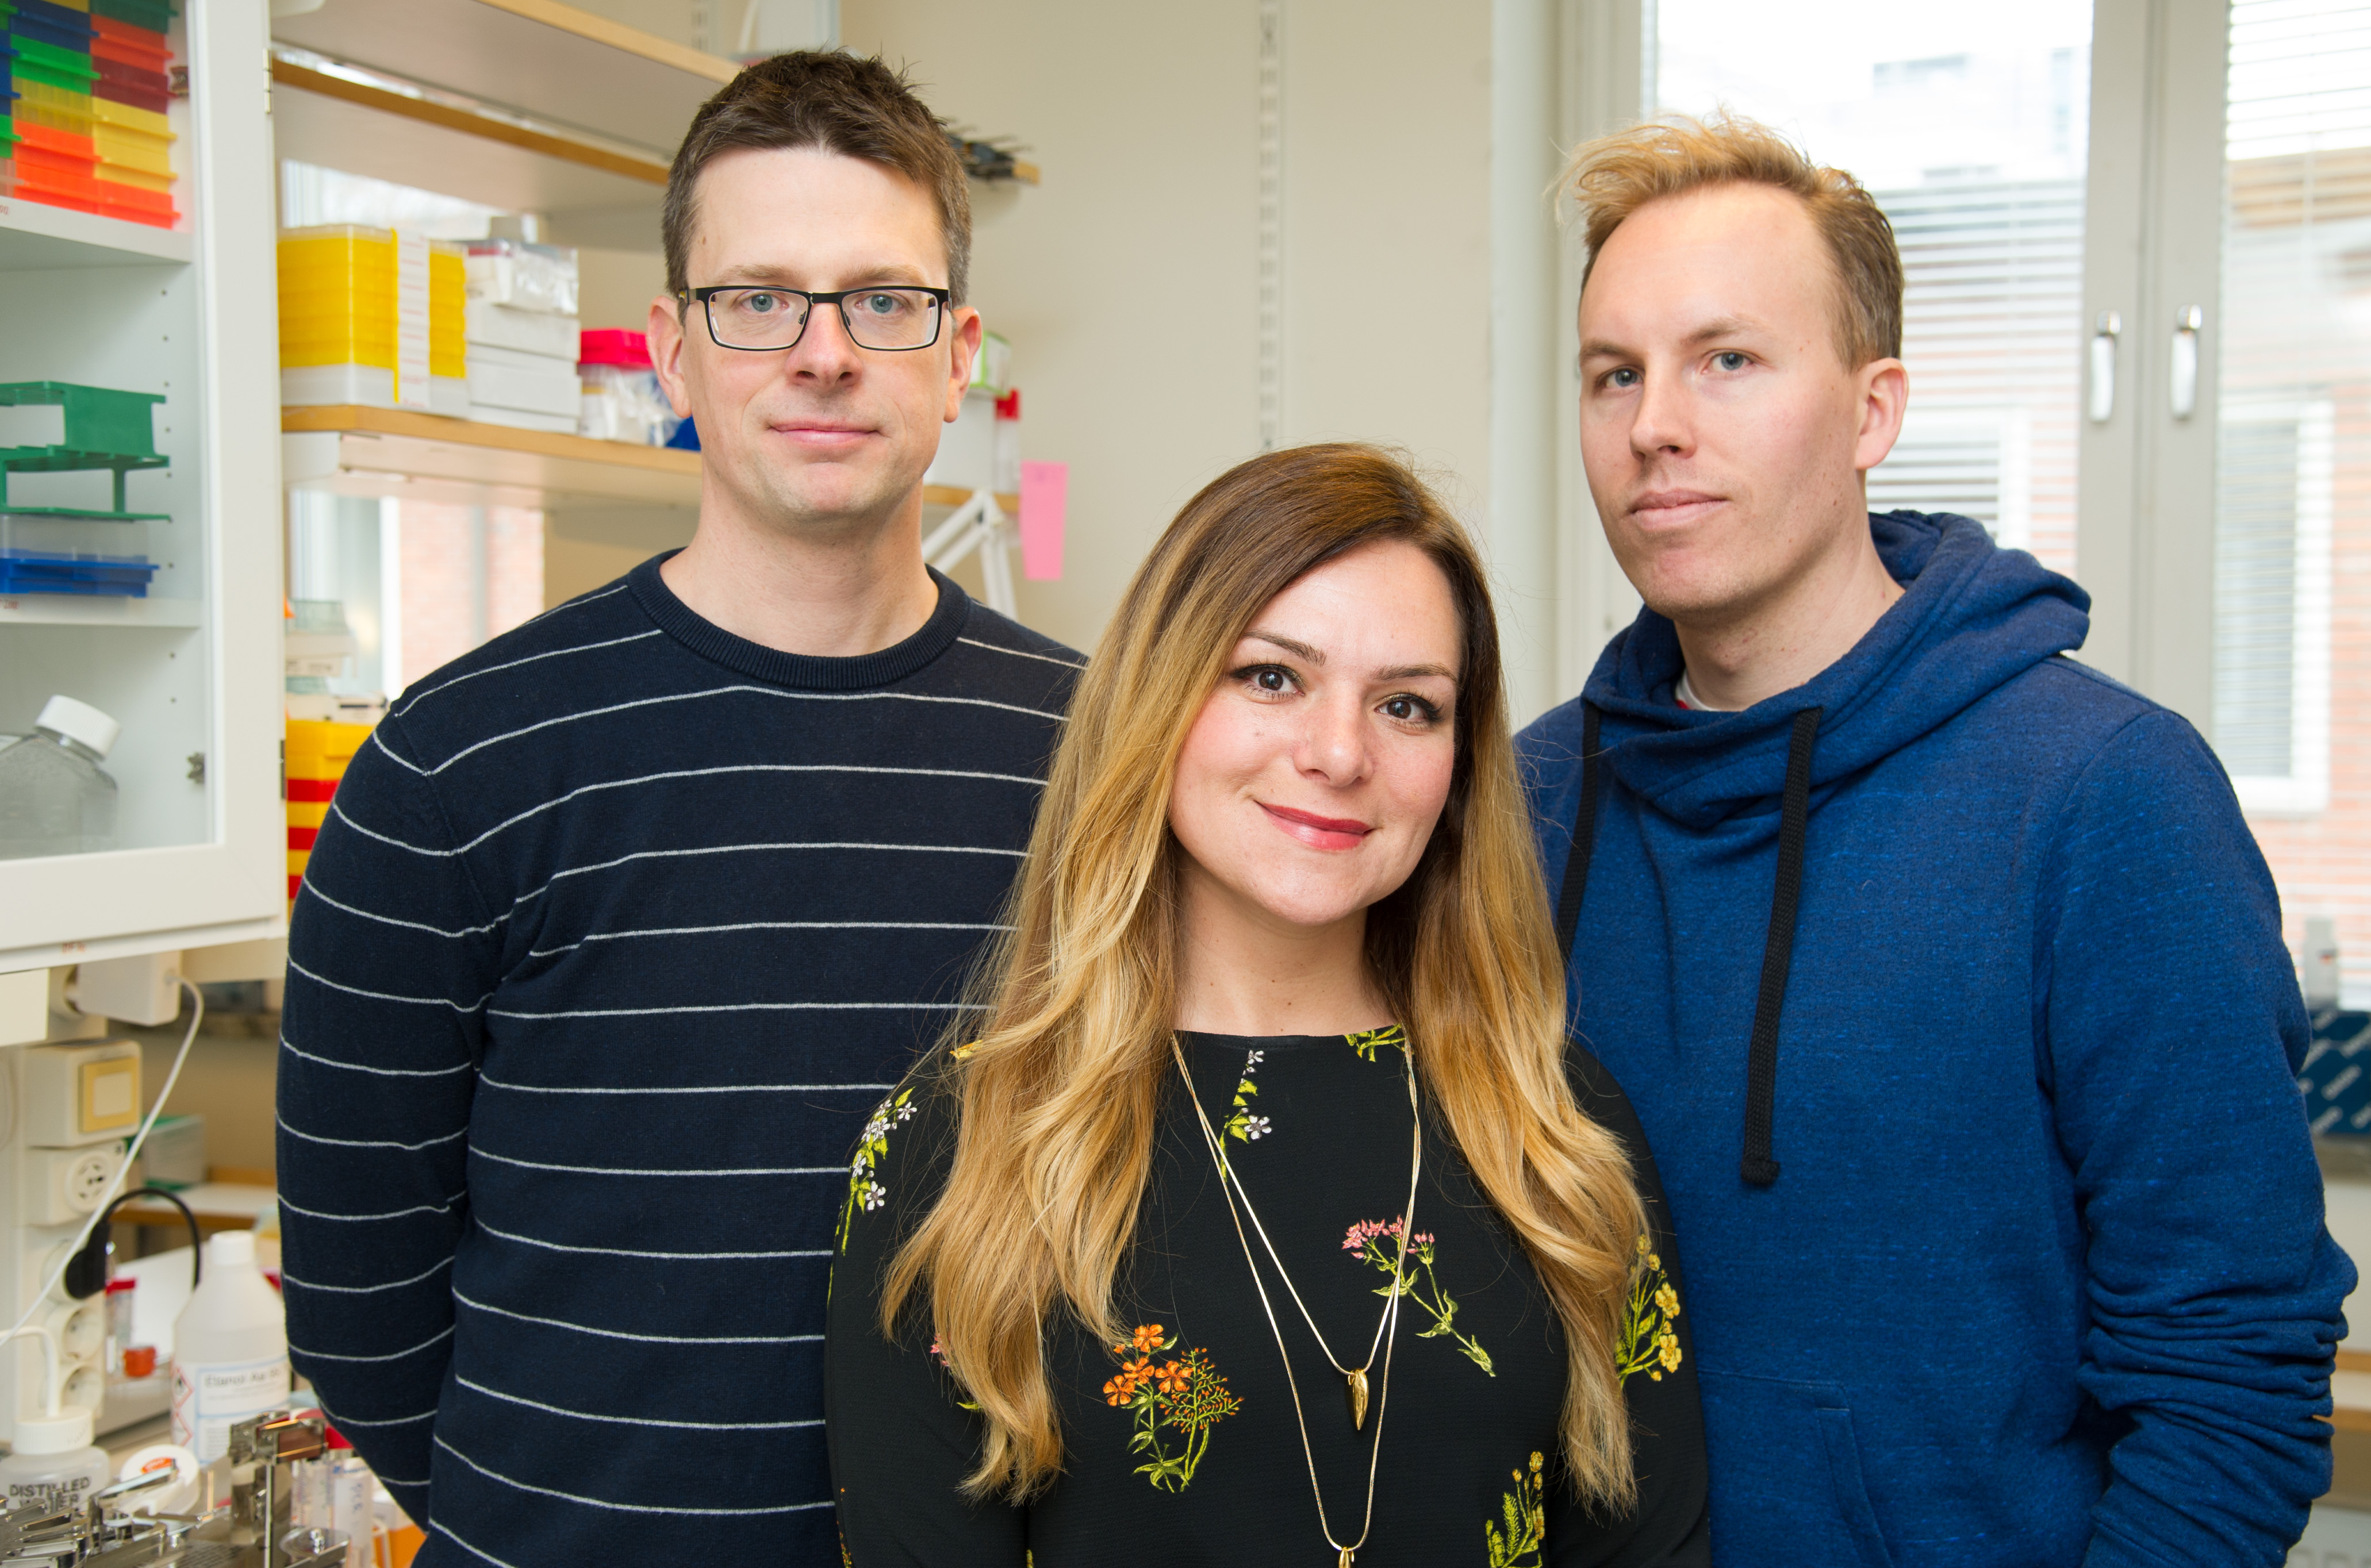 SOPHIE PETROPOULOS WITH PROFESSORS FREDRIK LANNER AND RICKARD SANDBERG. PHOTO BY ULF SIRBORN/KAROLINSKA INSTITUTET